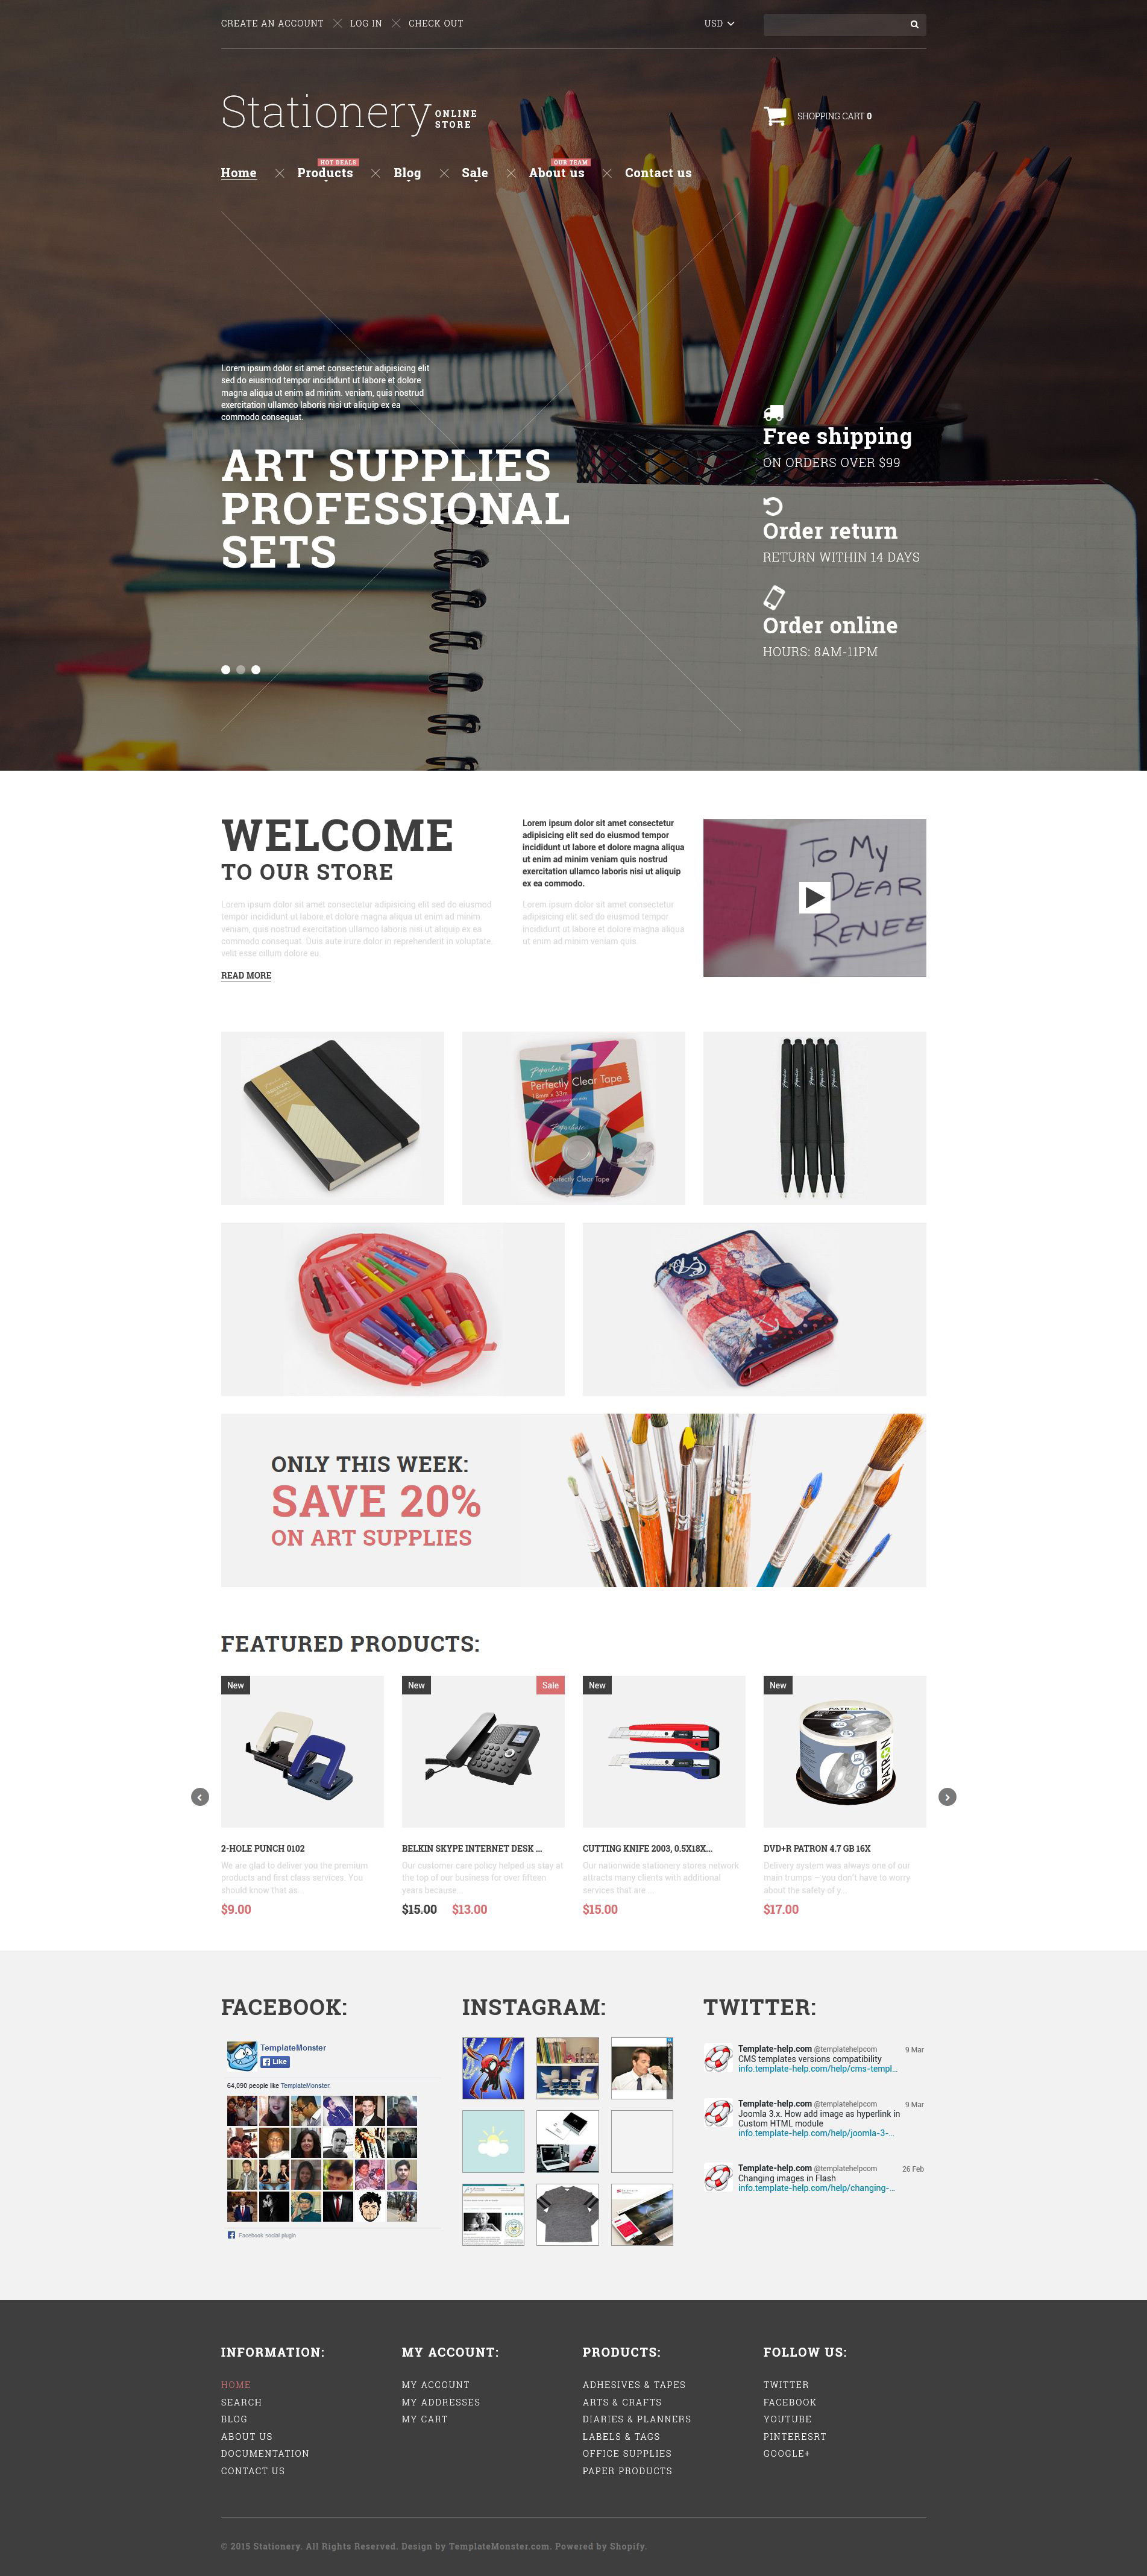 The Stationary Store Shopify Design 53344, one of the best Shopify themes of its kind (business), also known as stationary store Shopify template, stationery Shopify template, office Shopify template, accessories Shopify template, writing Shopify template, materials Shopify template, pen Shopify template, marker Shopify template, ink Shopify template, paper Shopify template, notebook Shopify template, pencil and related with stationary store, stationery, office, accessories, writing, materials, pen, marker, ink, paper, notebook, pencil, etc.